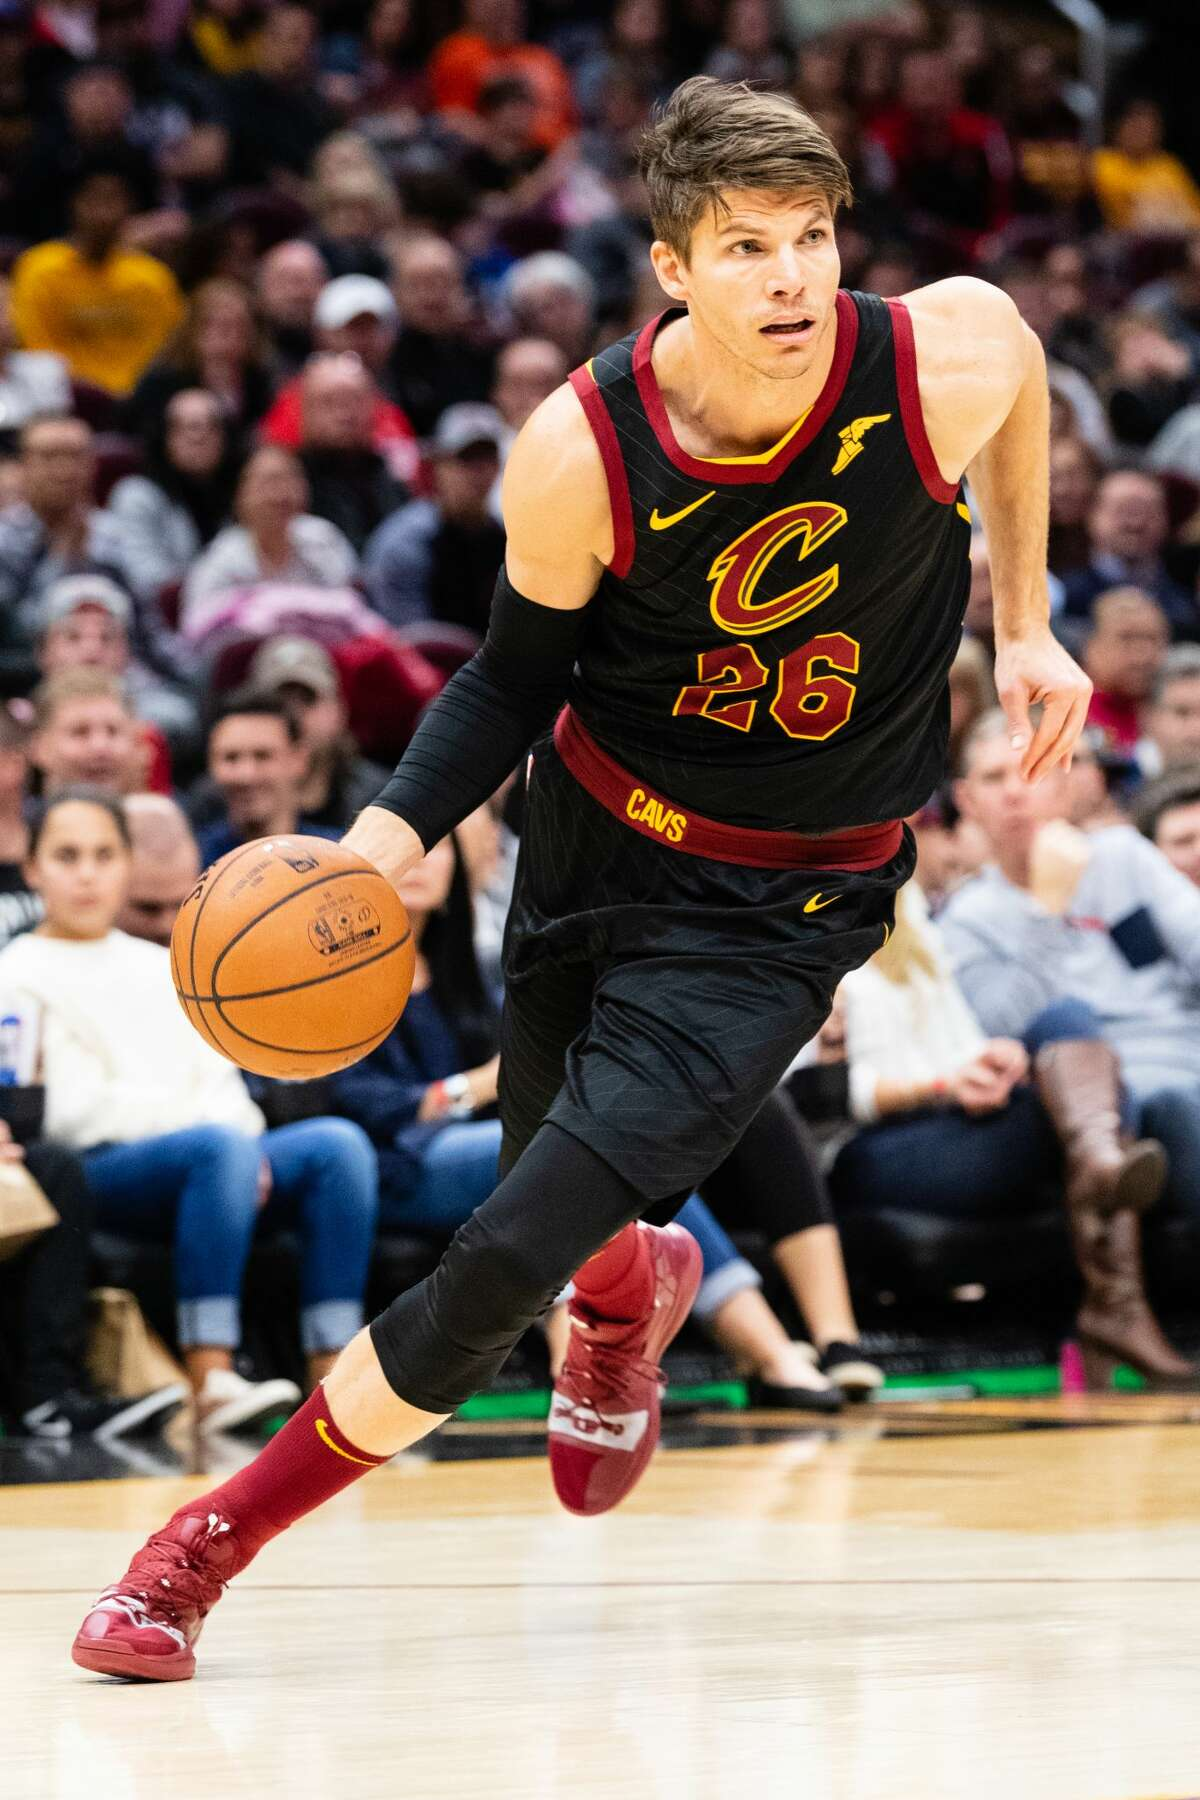 CLEVELAND, OH - NOVEMBER 24: Kyle Korver #26 of the Cleveland Cavaliers drives to the basket during the second half against the Houston Rockets at Quicken Loans Arena on November 24, 2018 in Cleveland, Ohio. The Cavaliers defeated the Rockets 117-108. NOTE TO USER: User expressly acknowledges and agrees that, by downloading and/or using this photograph, user is consenting to the terms and conditions of the Getty Images License Agreement. (Photo by Jason Miller/Getty Images)